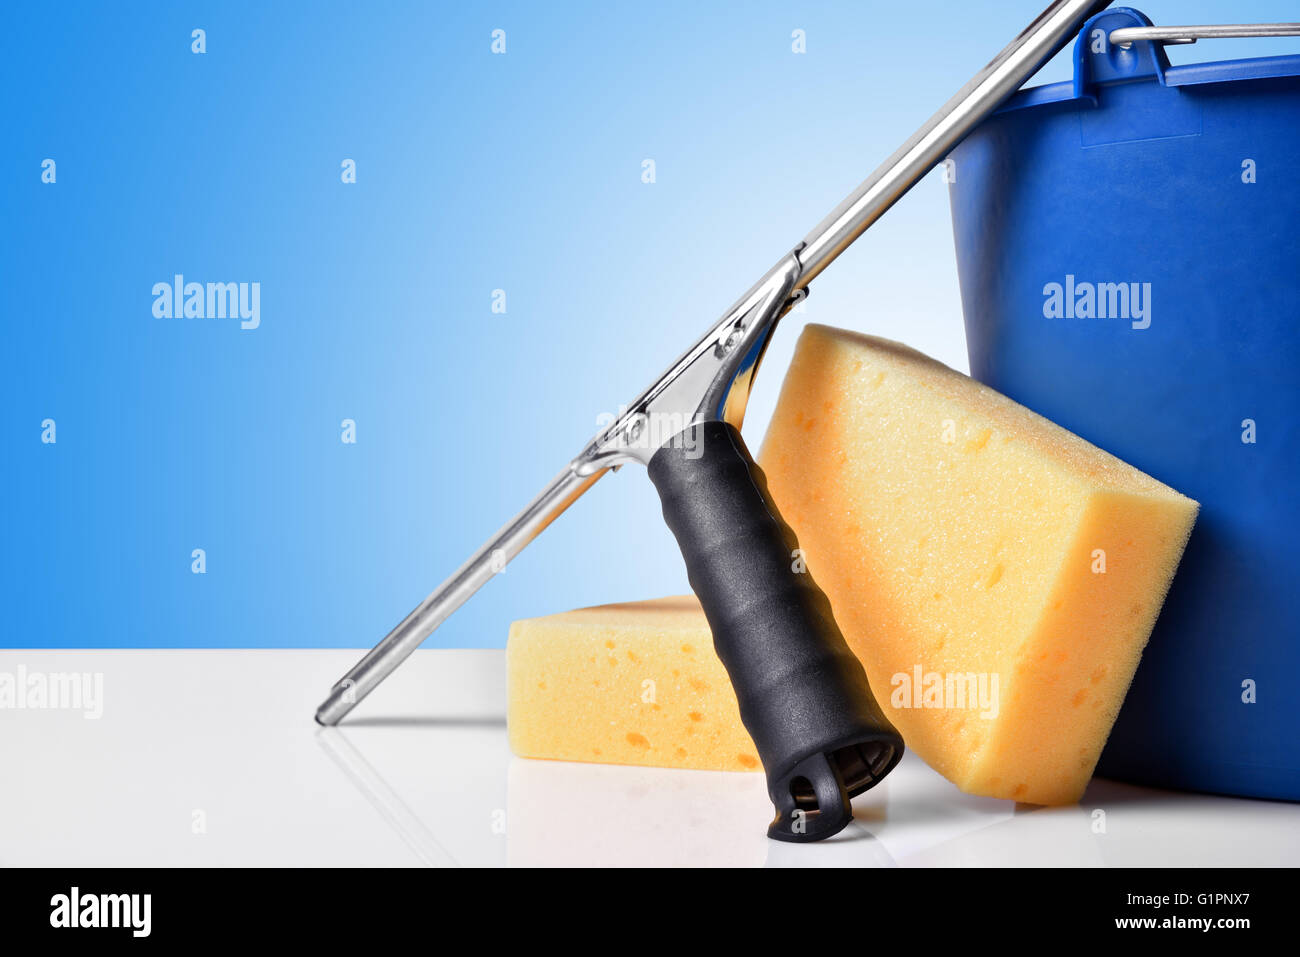 Cleaning Tools Stock Photos Amp Cleaning Tools Stock Images